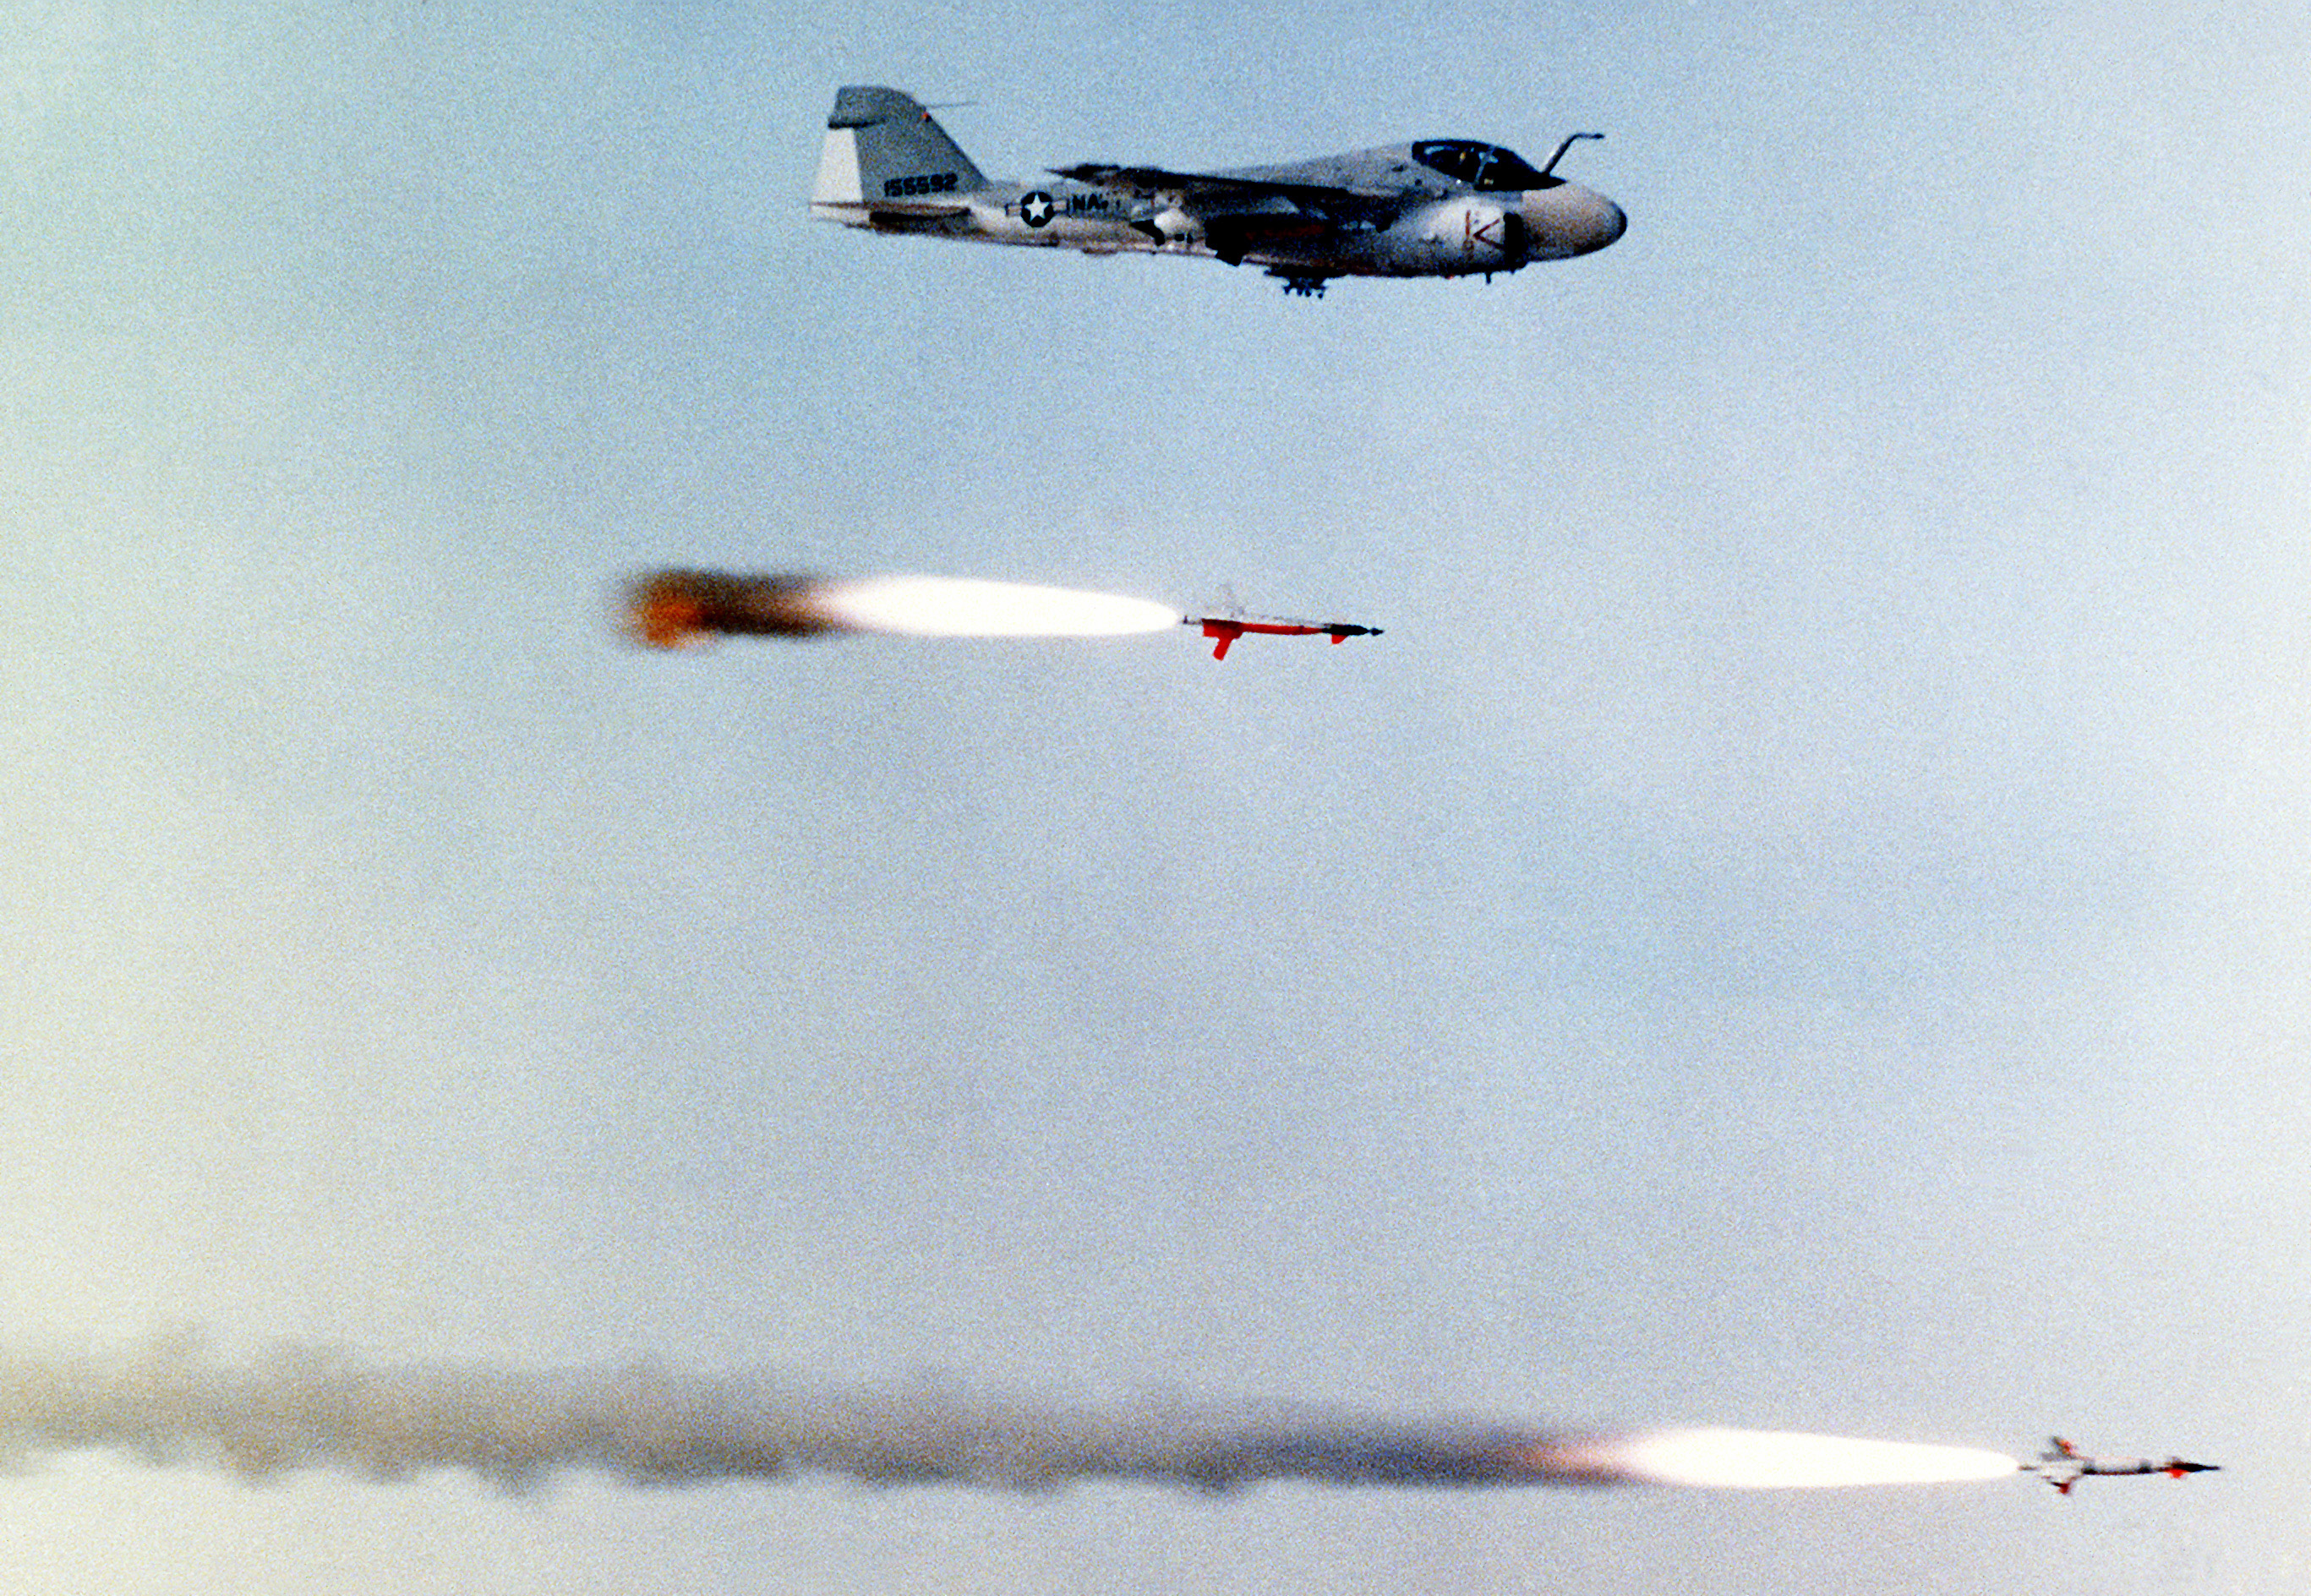 http://upload.wikimedia.org/wikipedia/commons/0/07/AGM-123_Skipper_II_with_chasing_A-6_Intruder.jpg